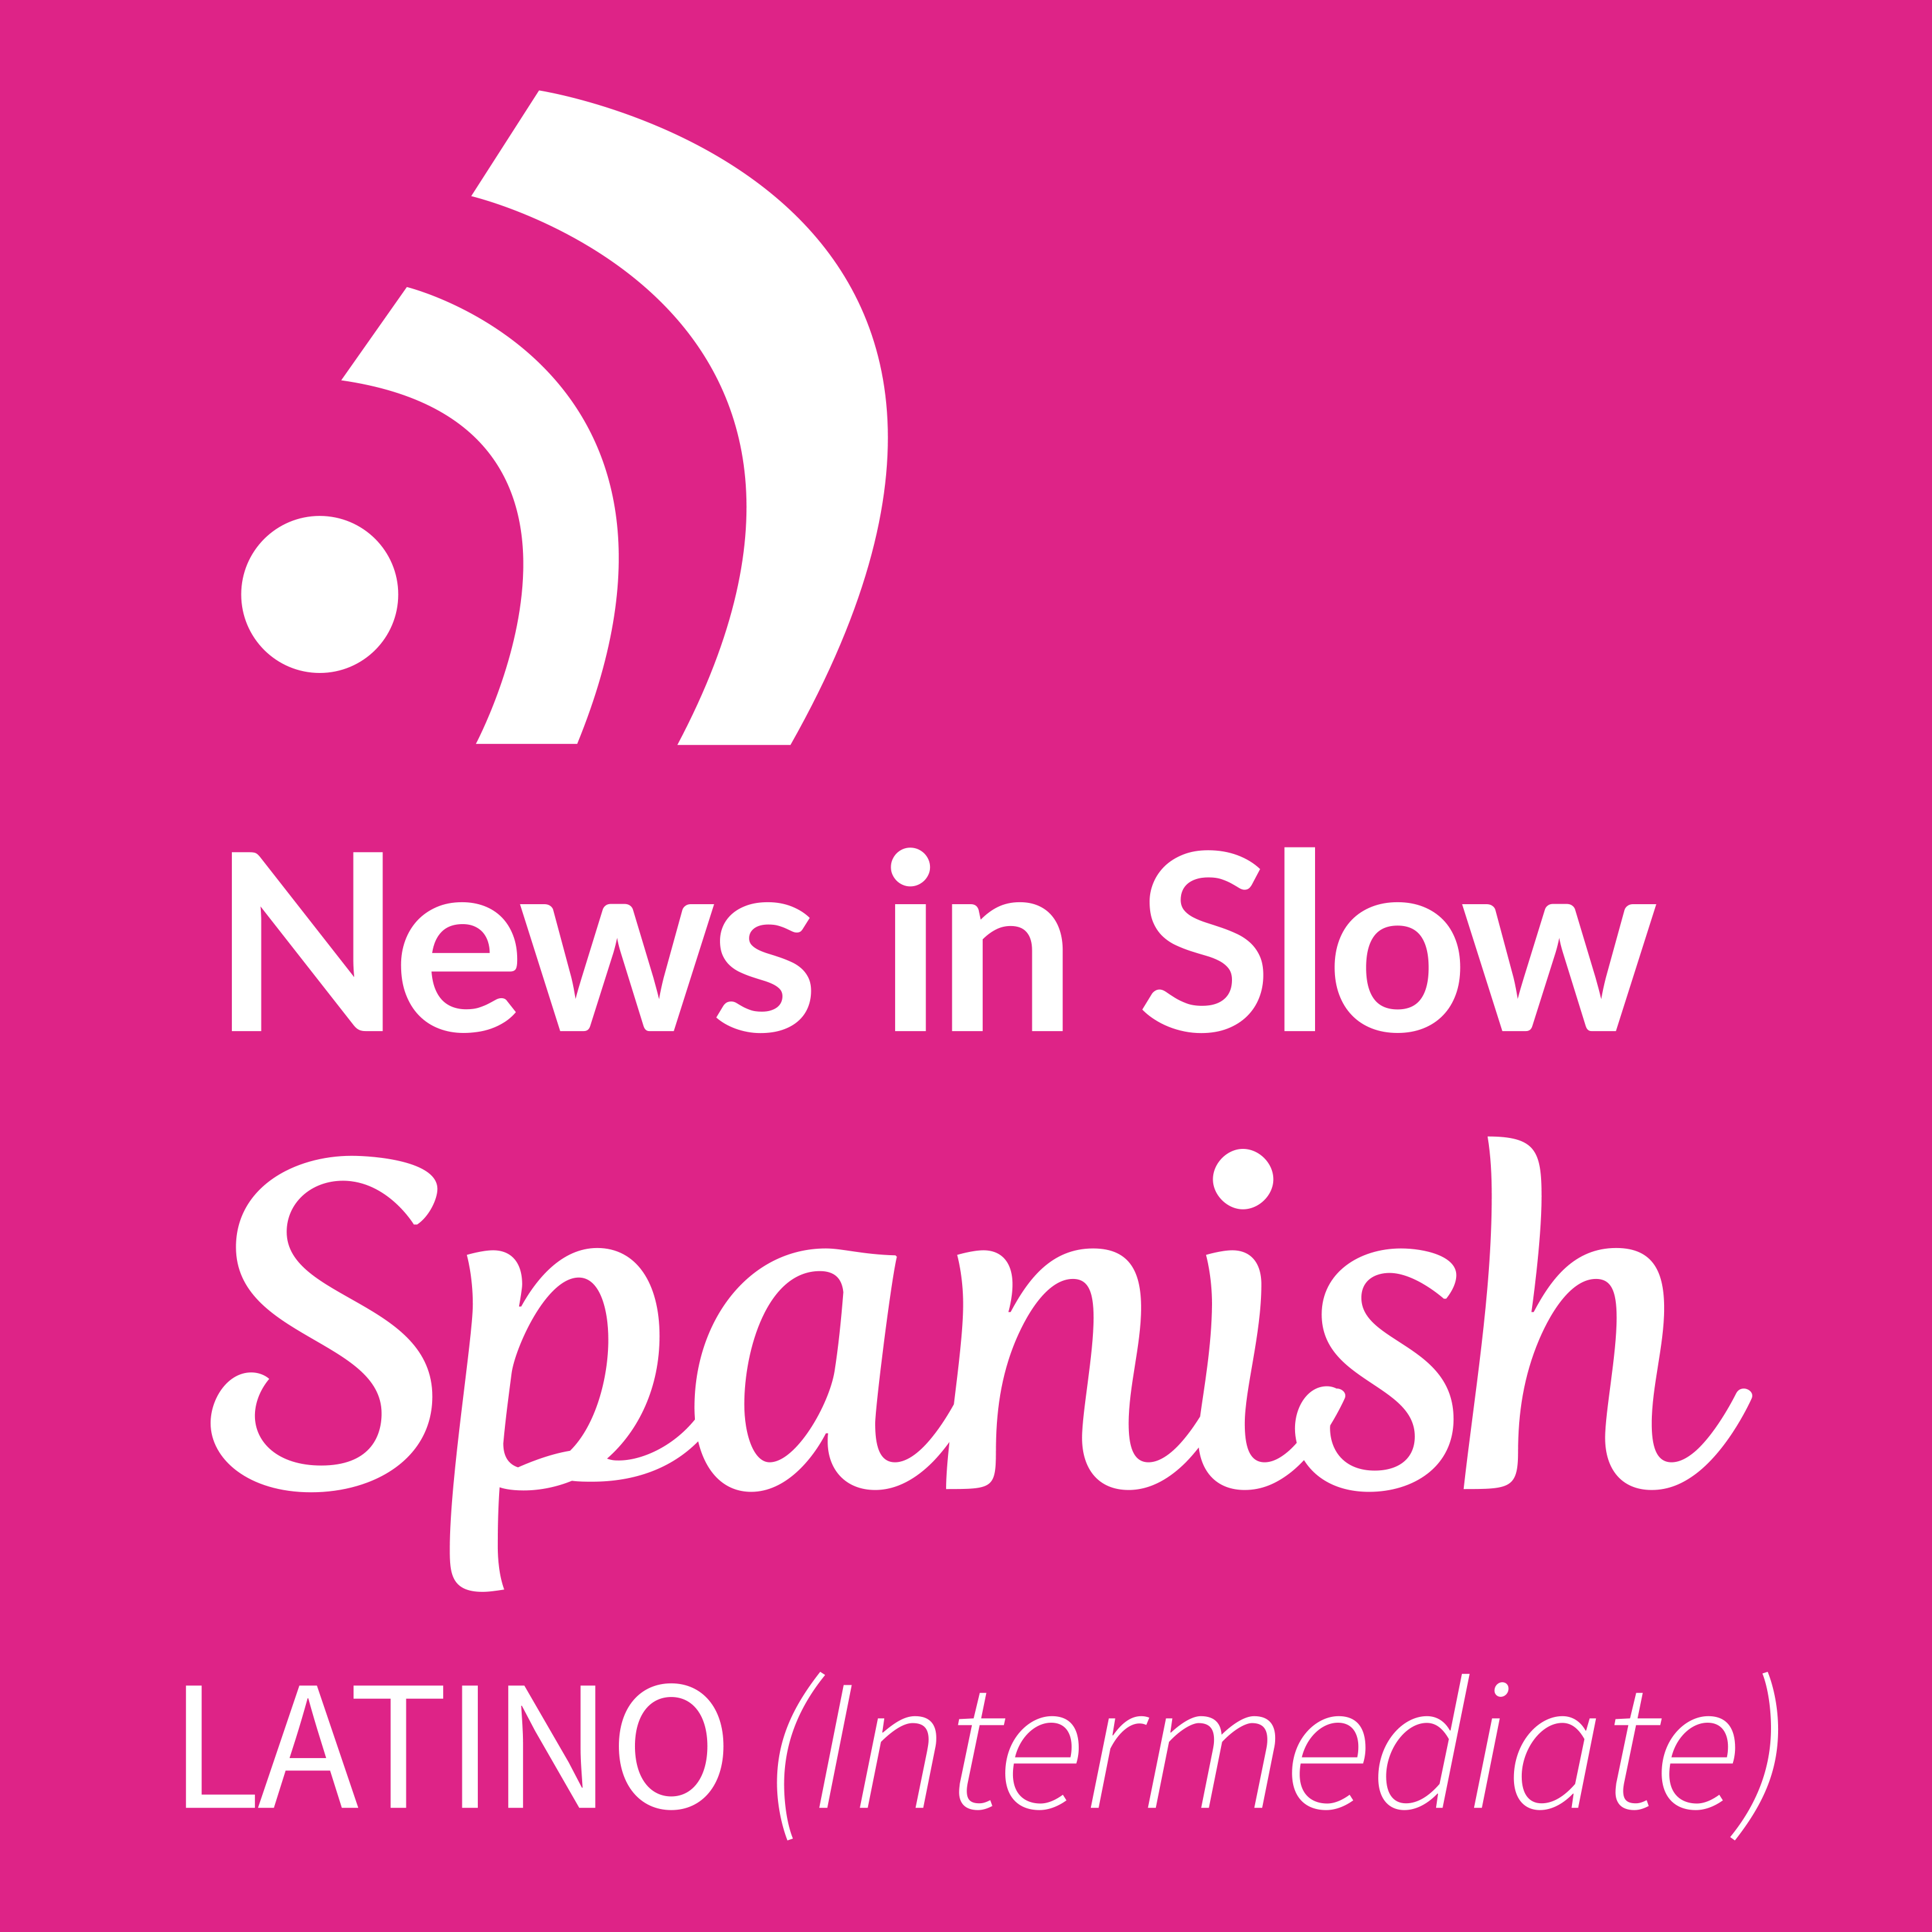 News in Slow Spanish Latino - # 134 - Spanish grammar, news and expressions